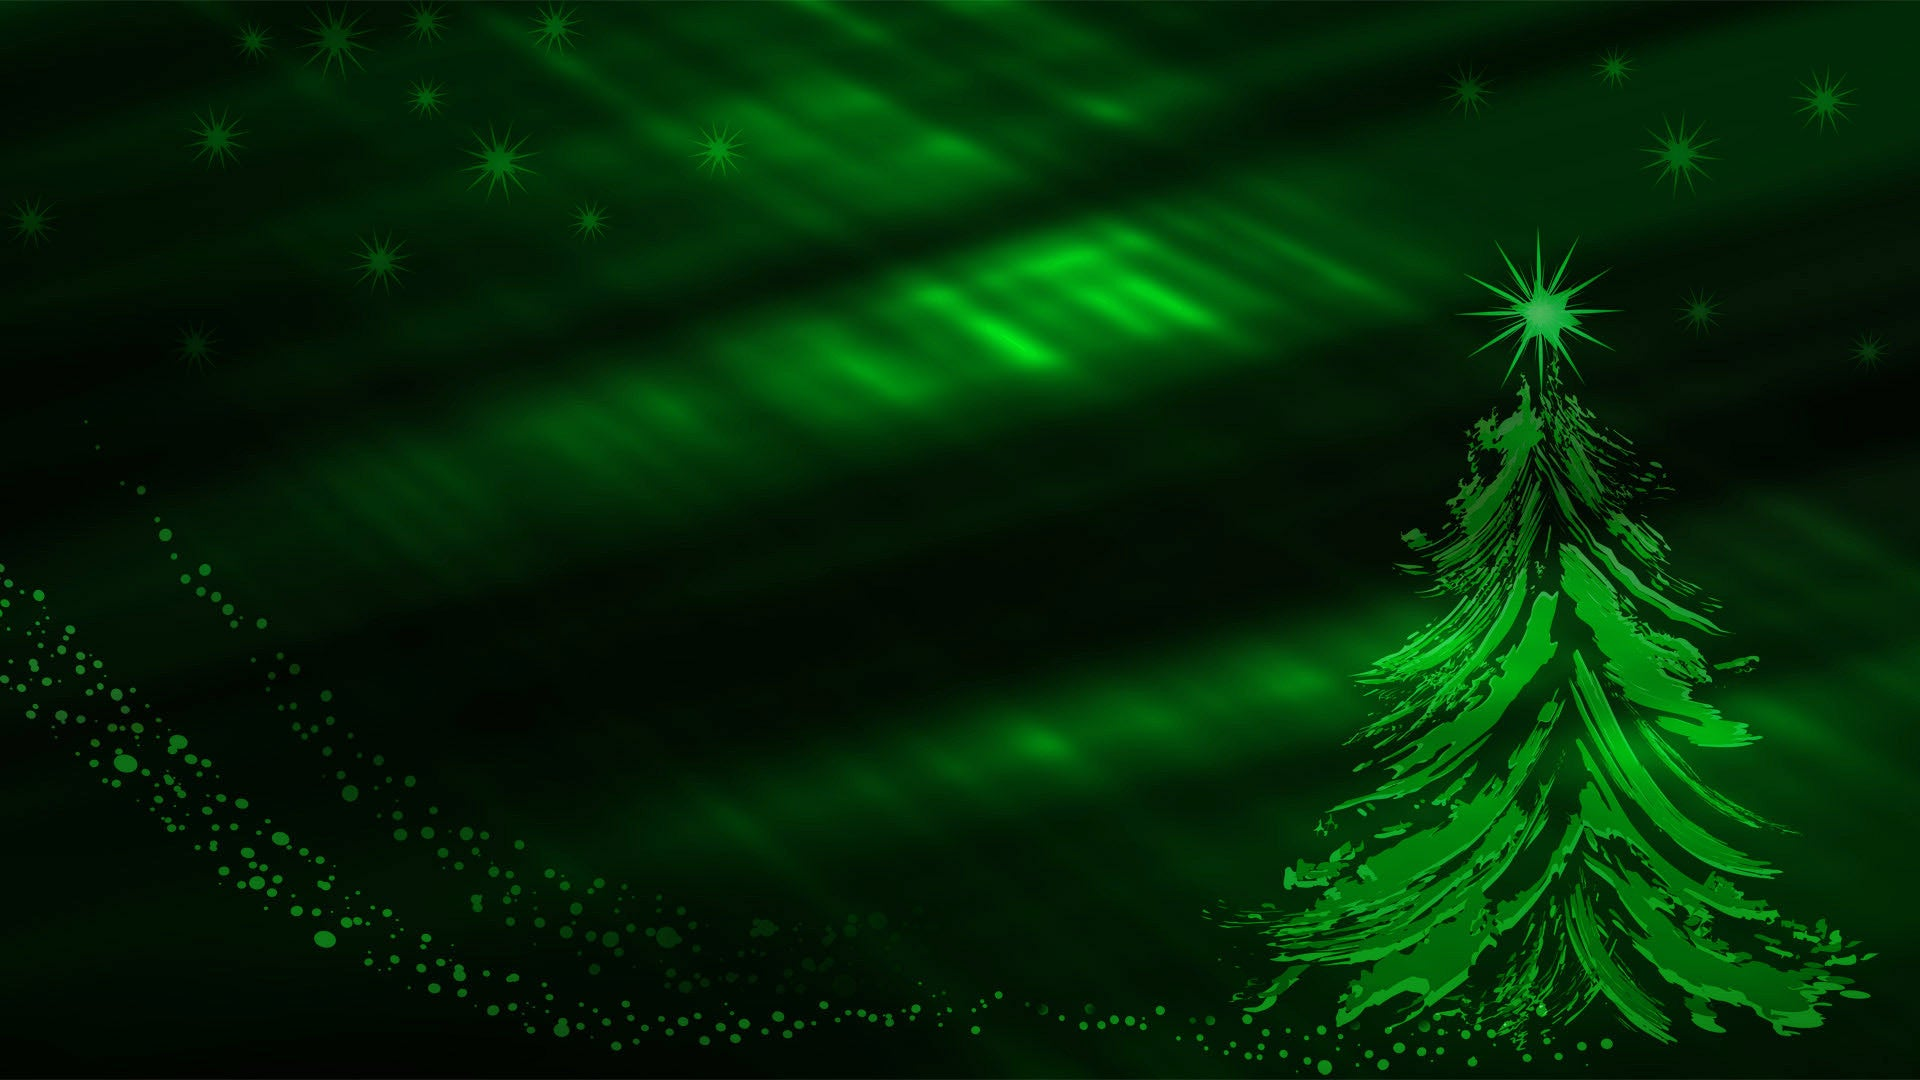 free, christmas, backgrounds, green, tree, christmas backgrounds